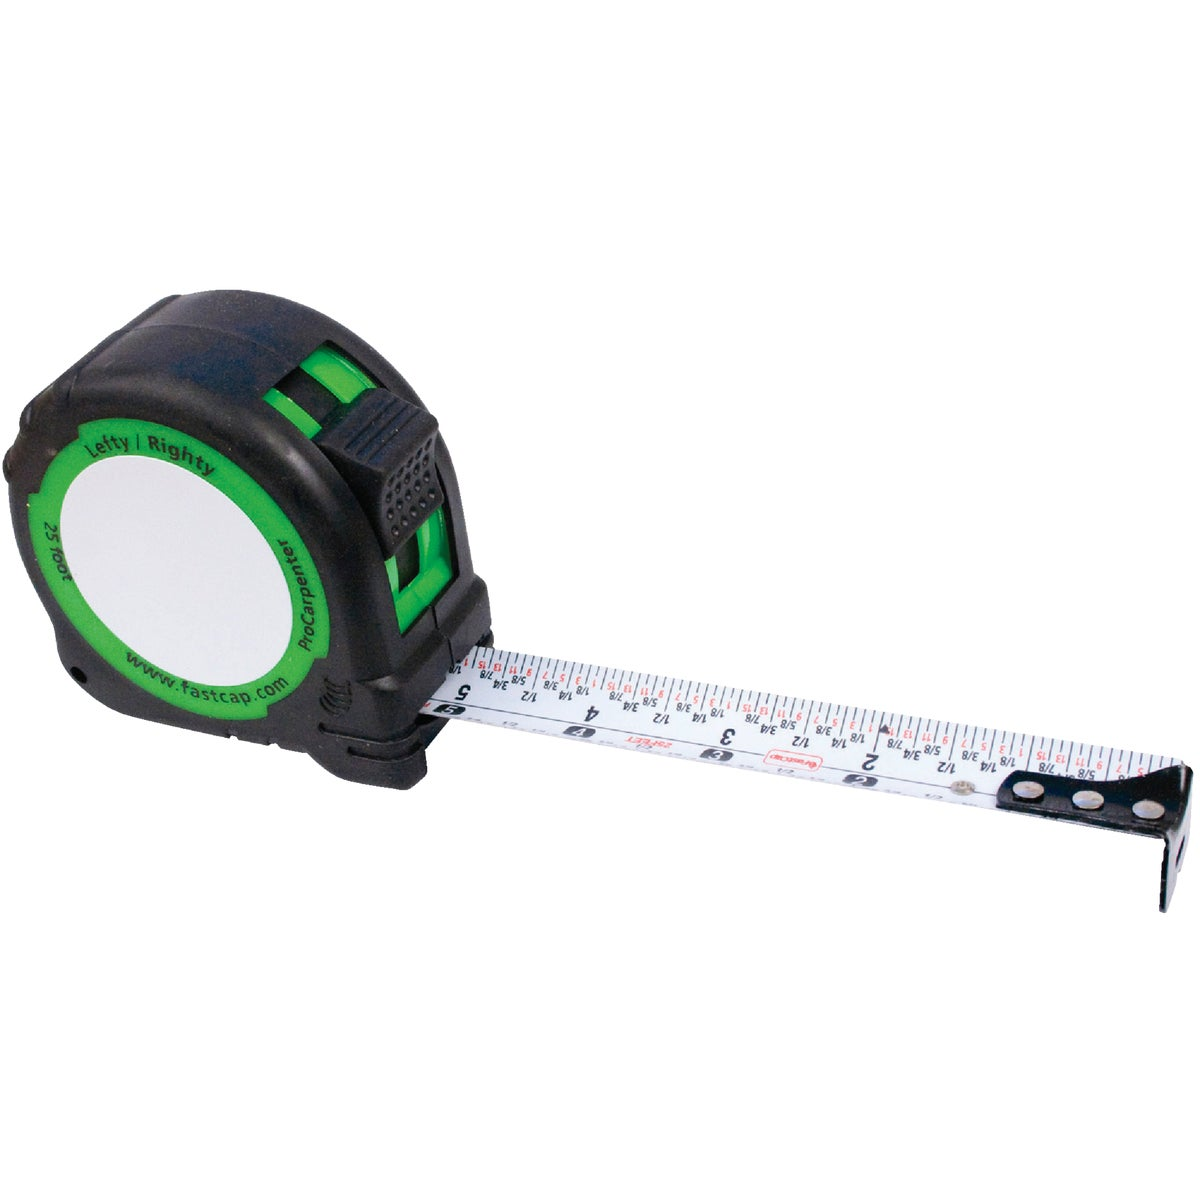 25' LFT/RGT TAPE MEASURE - PSSR-25 by Fastcap Llc